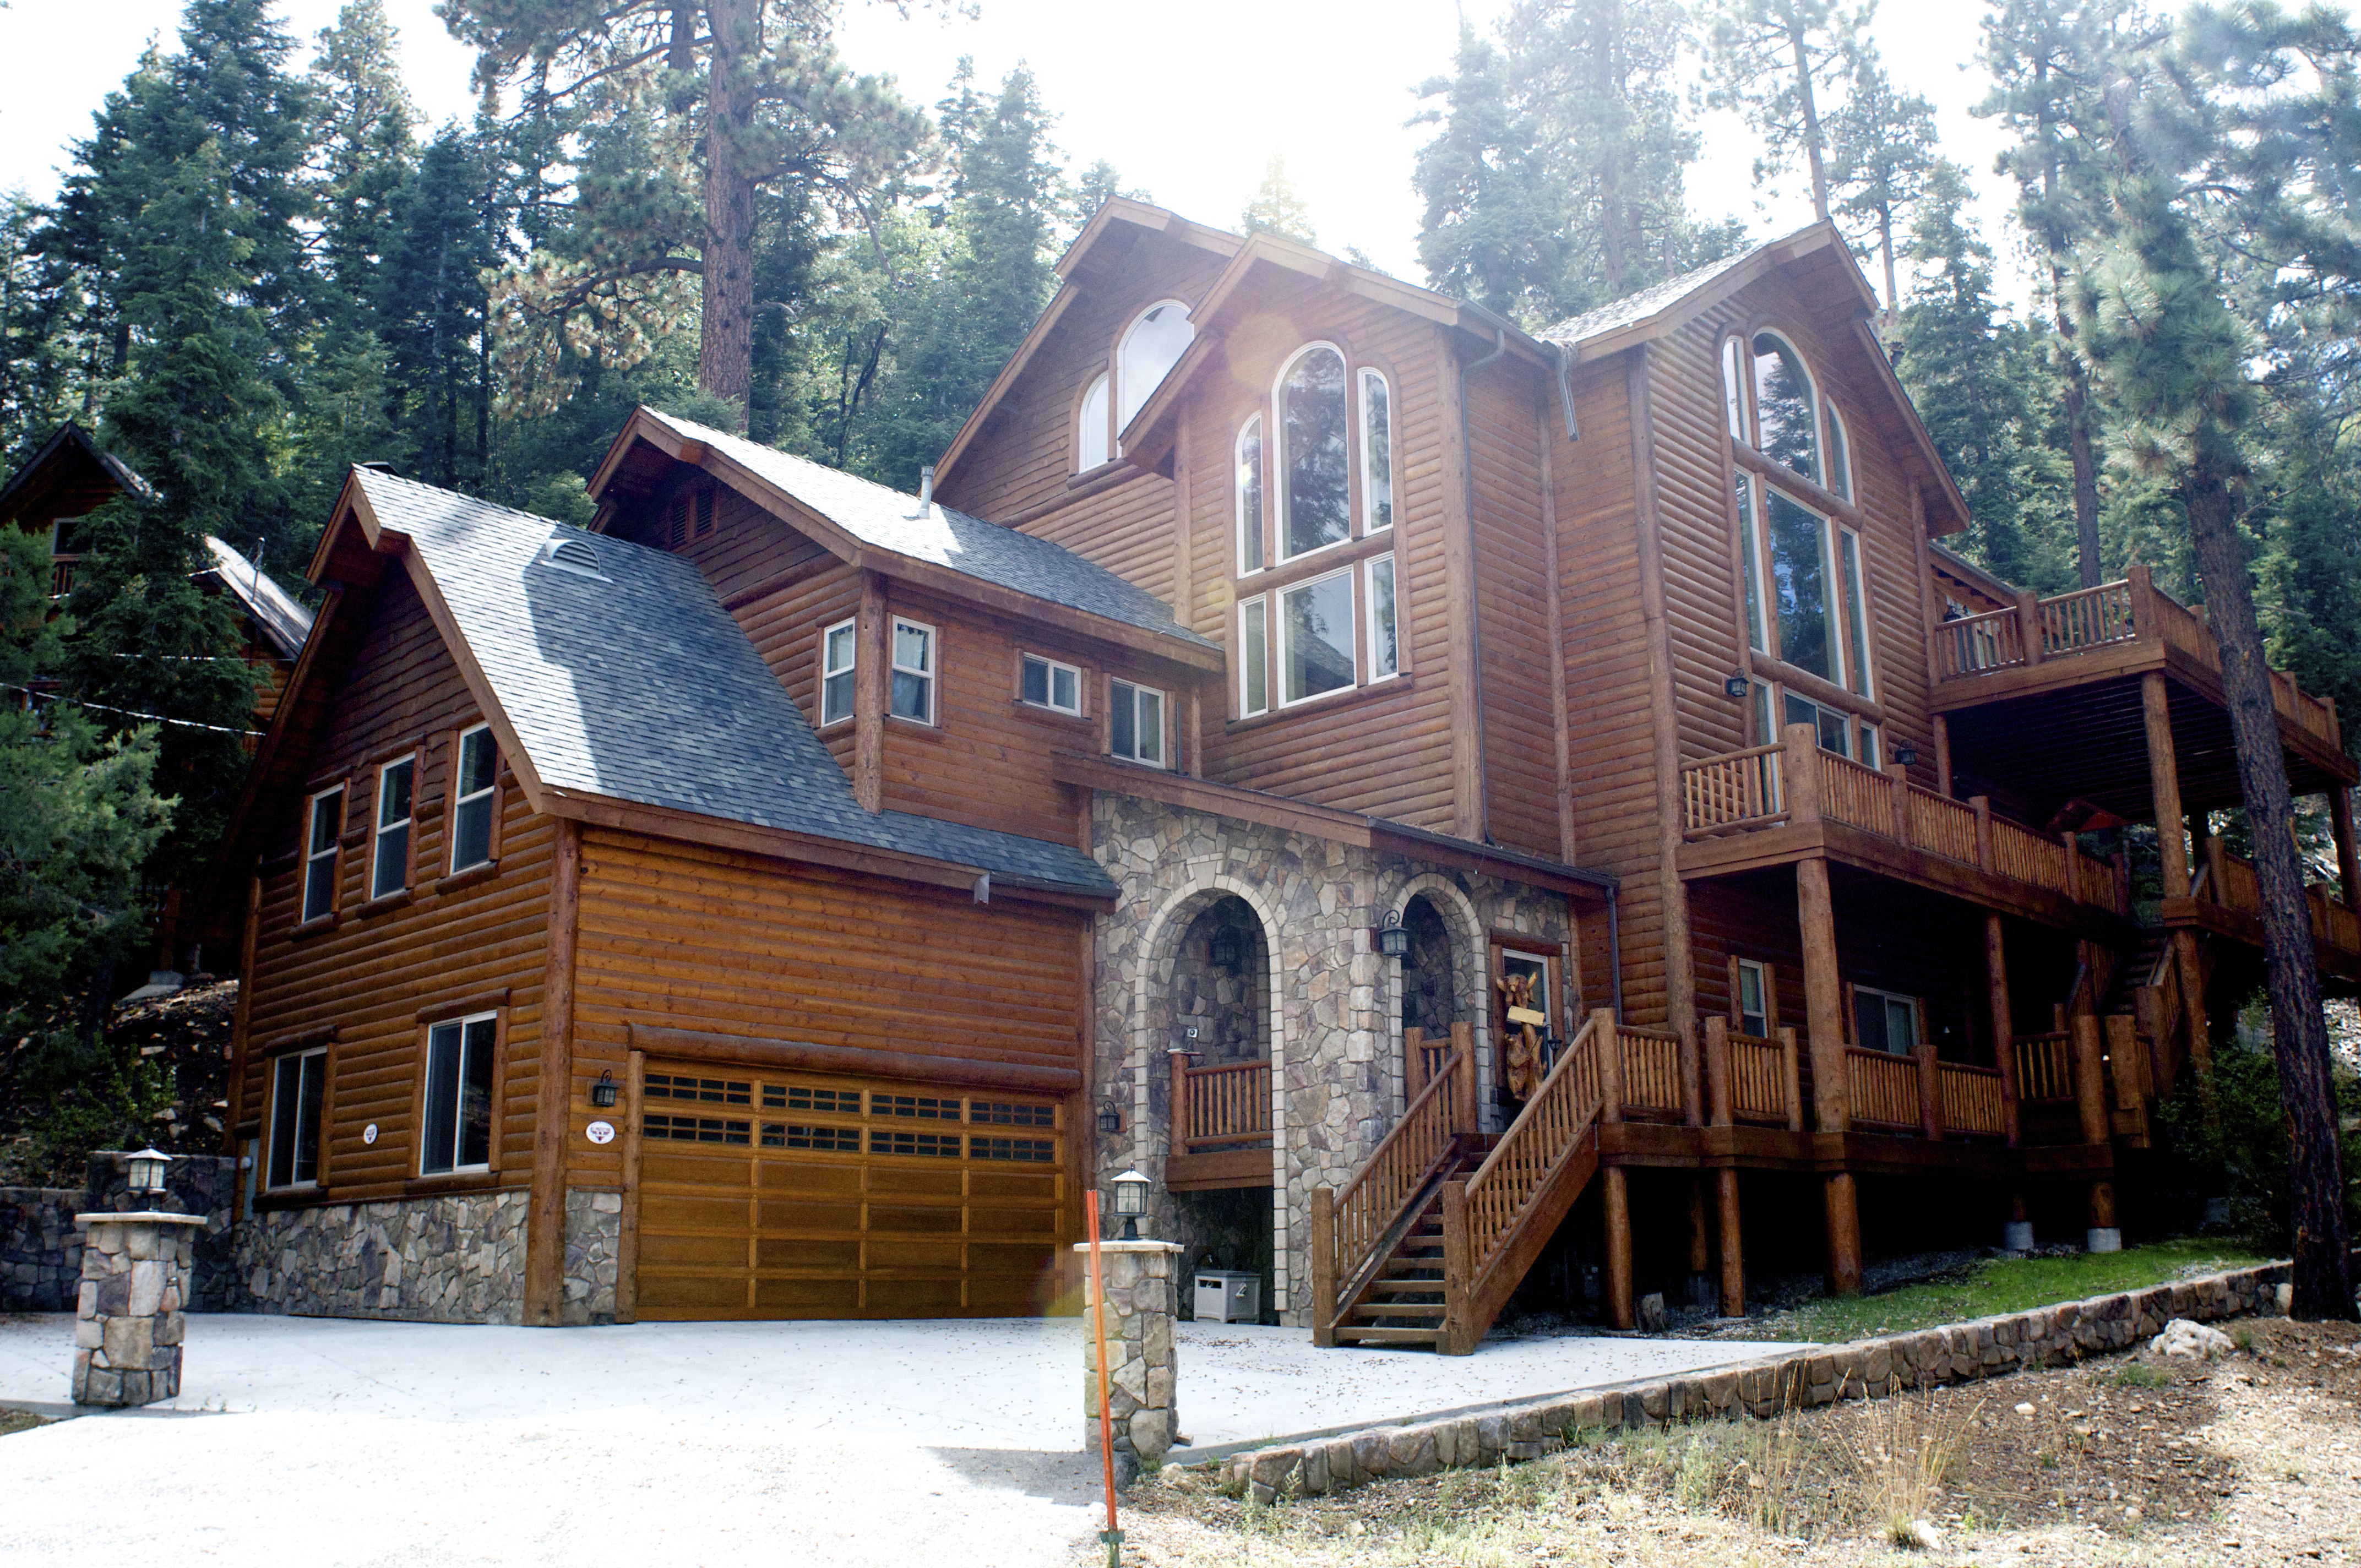 Luxury Lakefront Homes For Sale Lake Tahoe Alvin Steinberg Coldwell Banker  Select 1 800